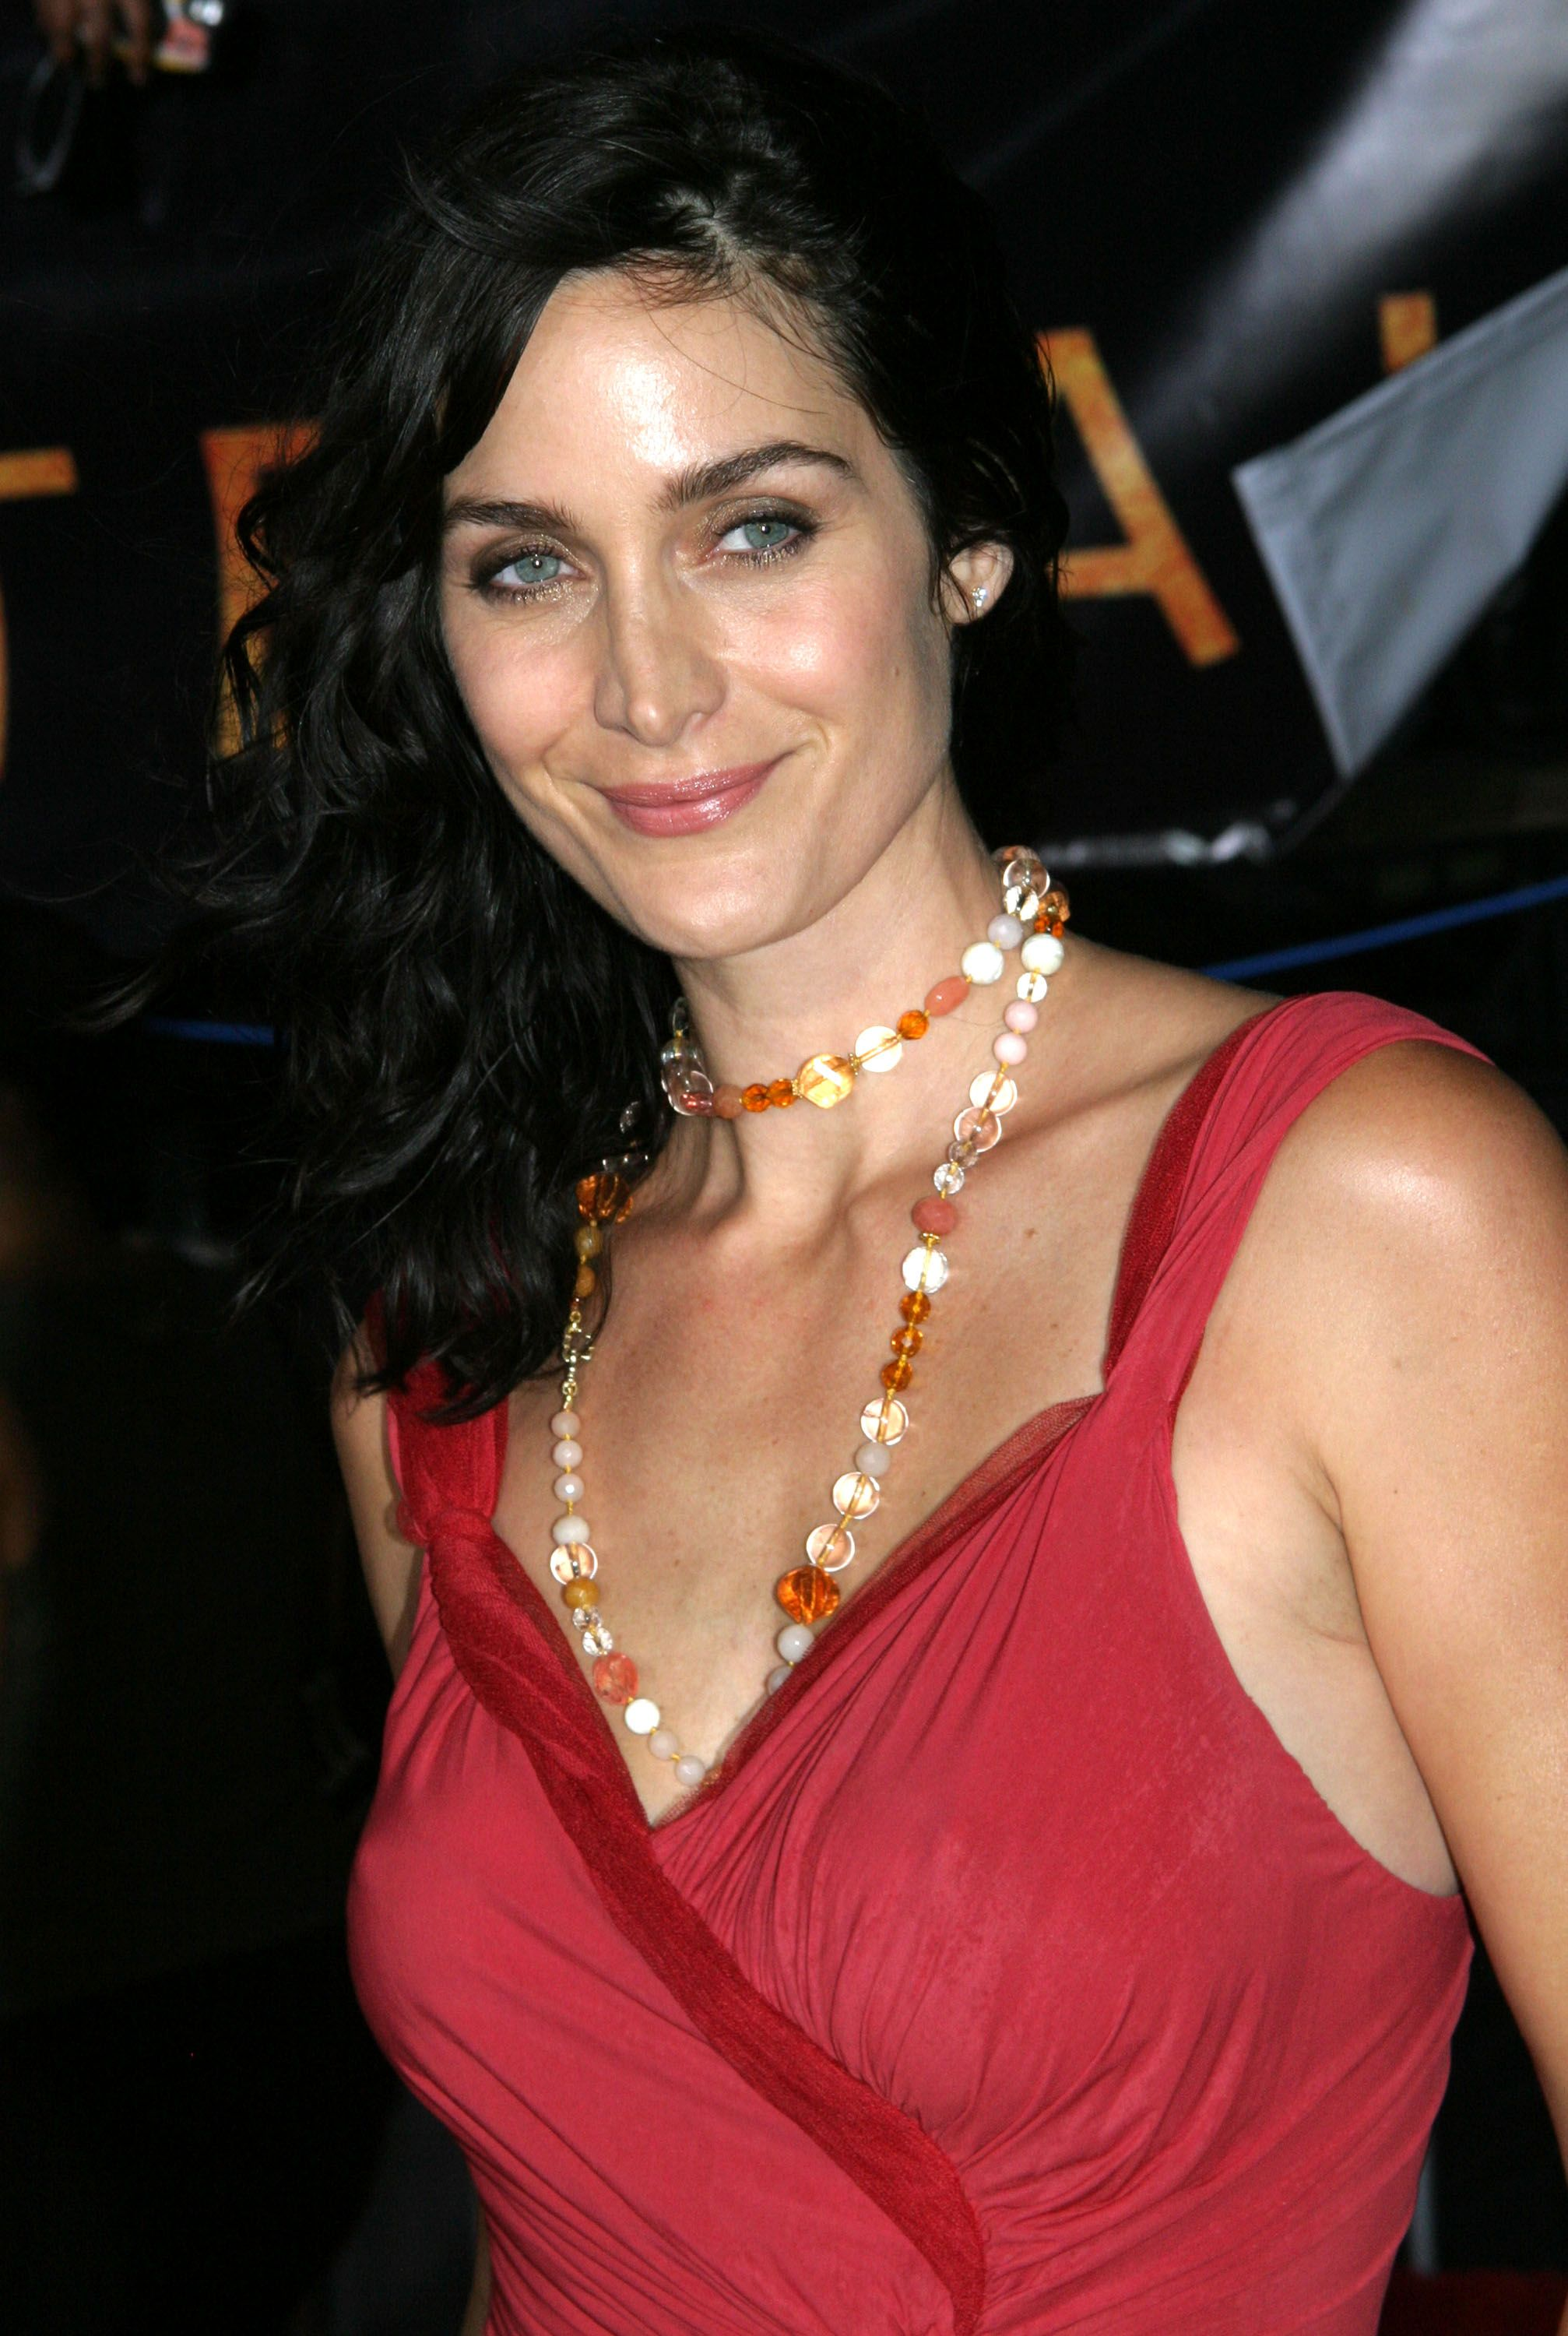 Carrie Anne Moss Photo Gallery Trulextraordinary In 2019